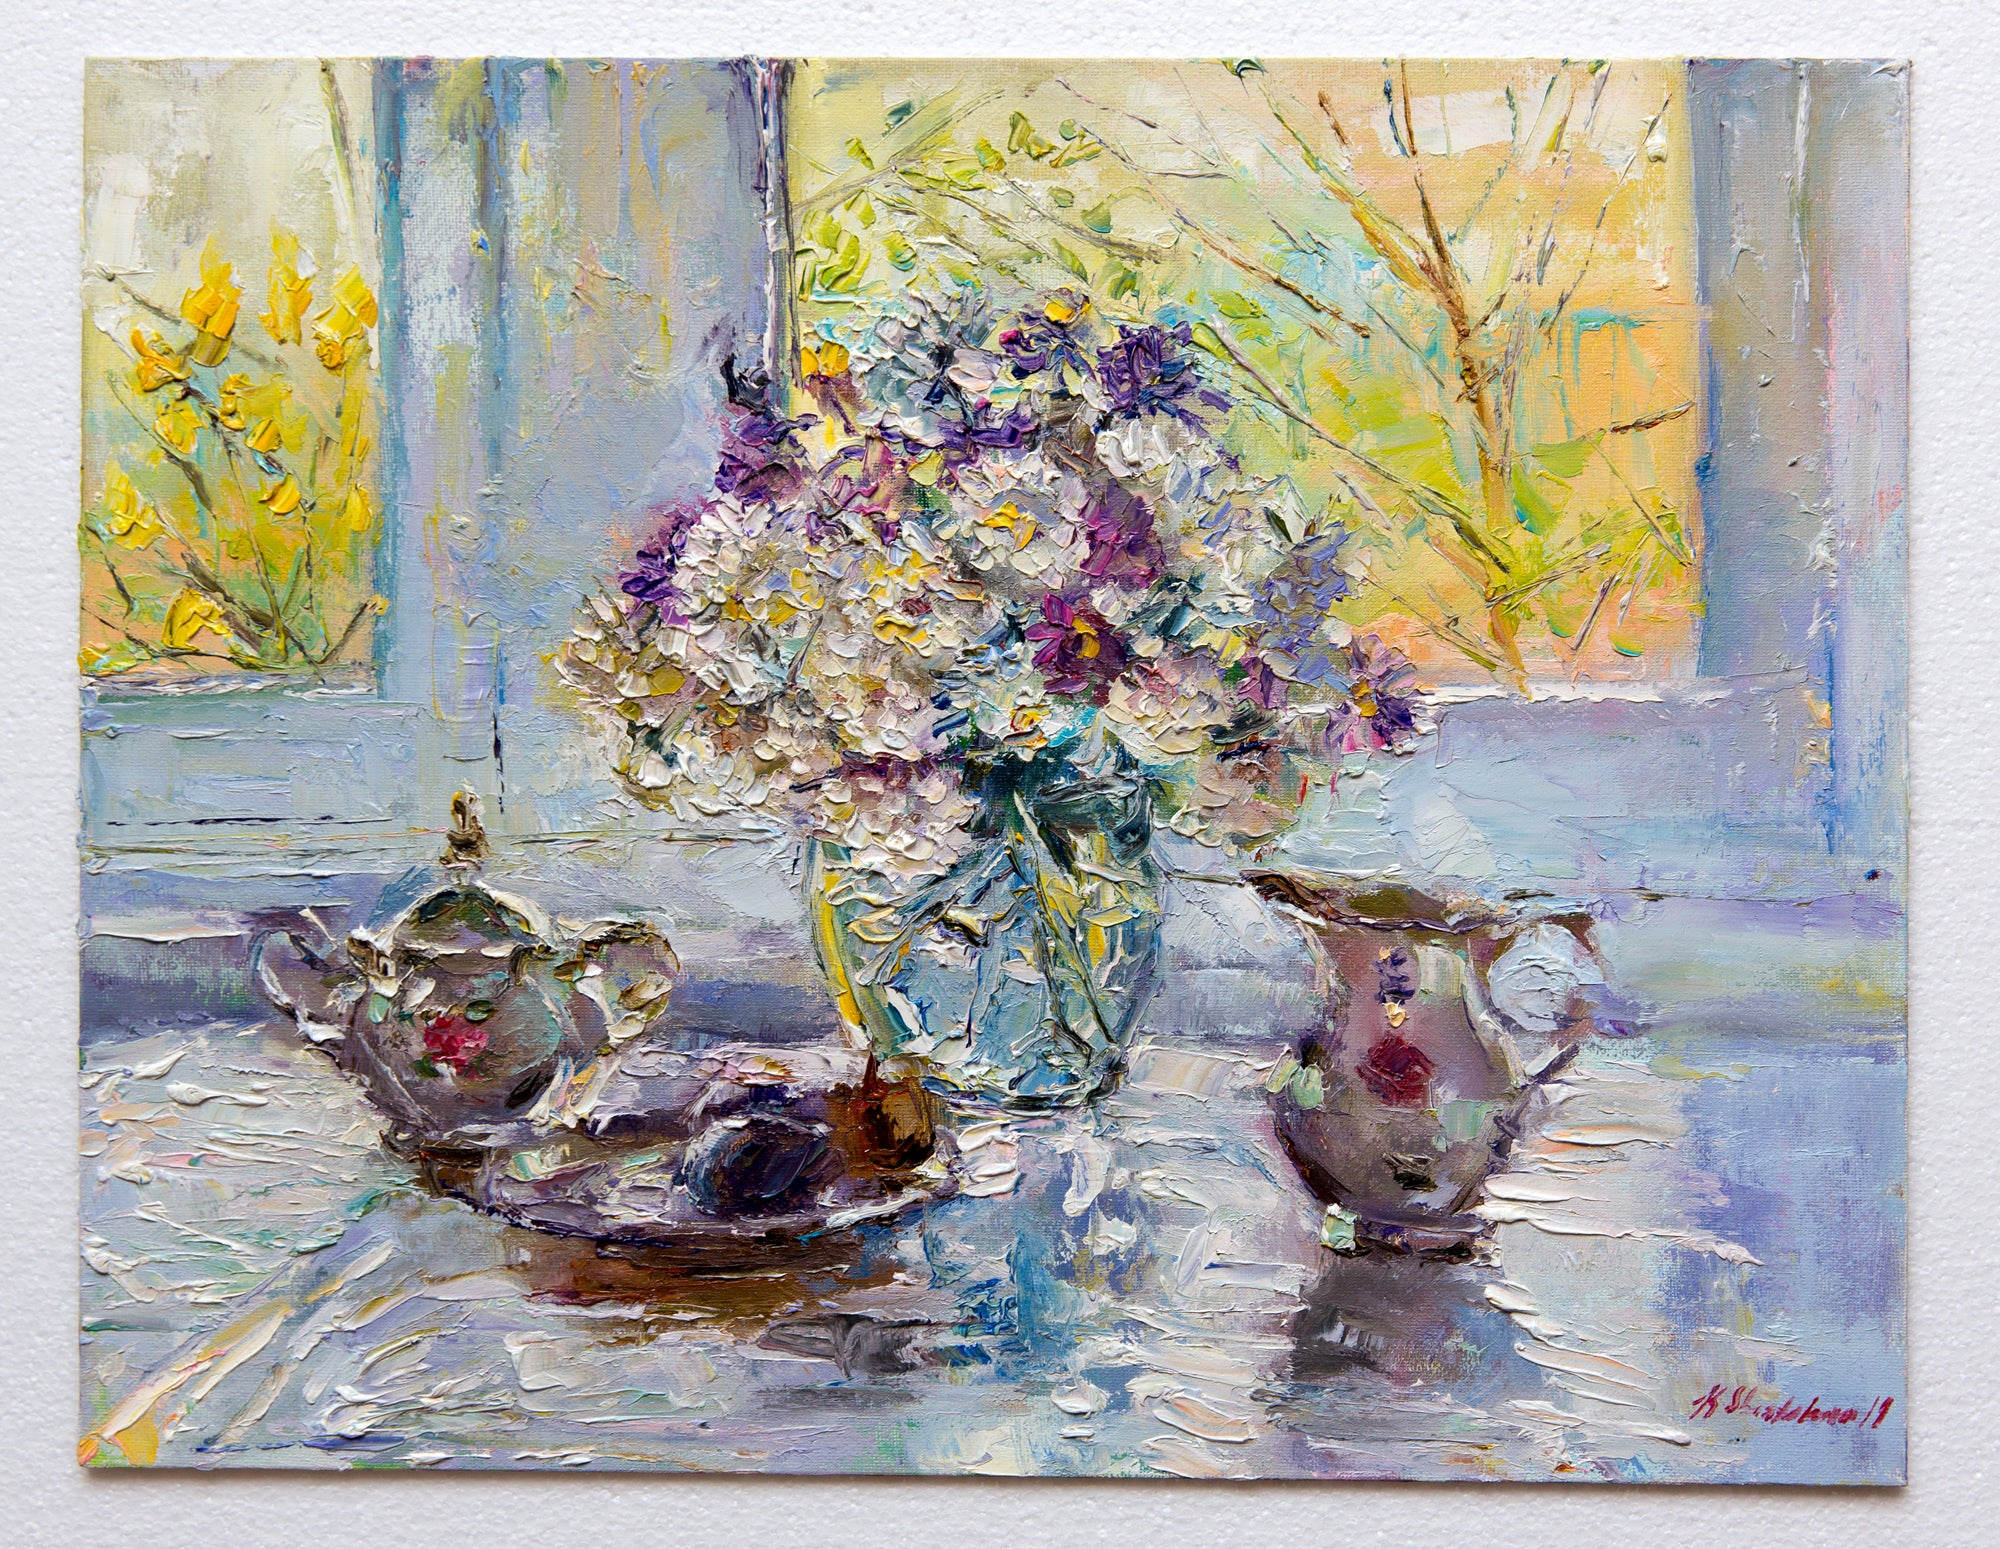 Still life with tea service by Kristina Shestakova, 45cm*35cm, oil painting